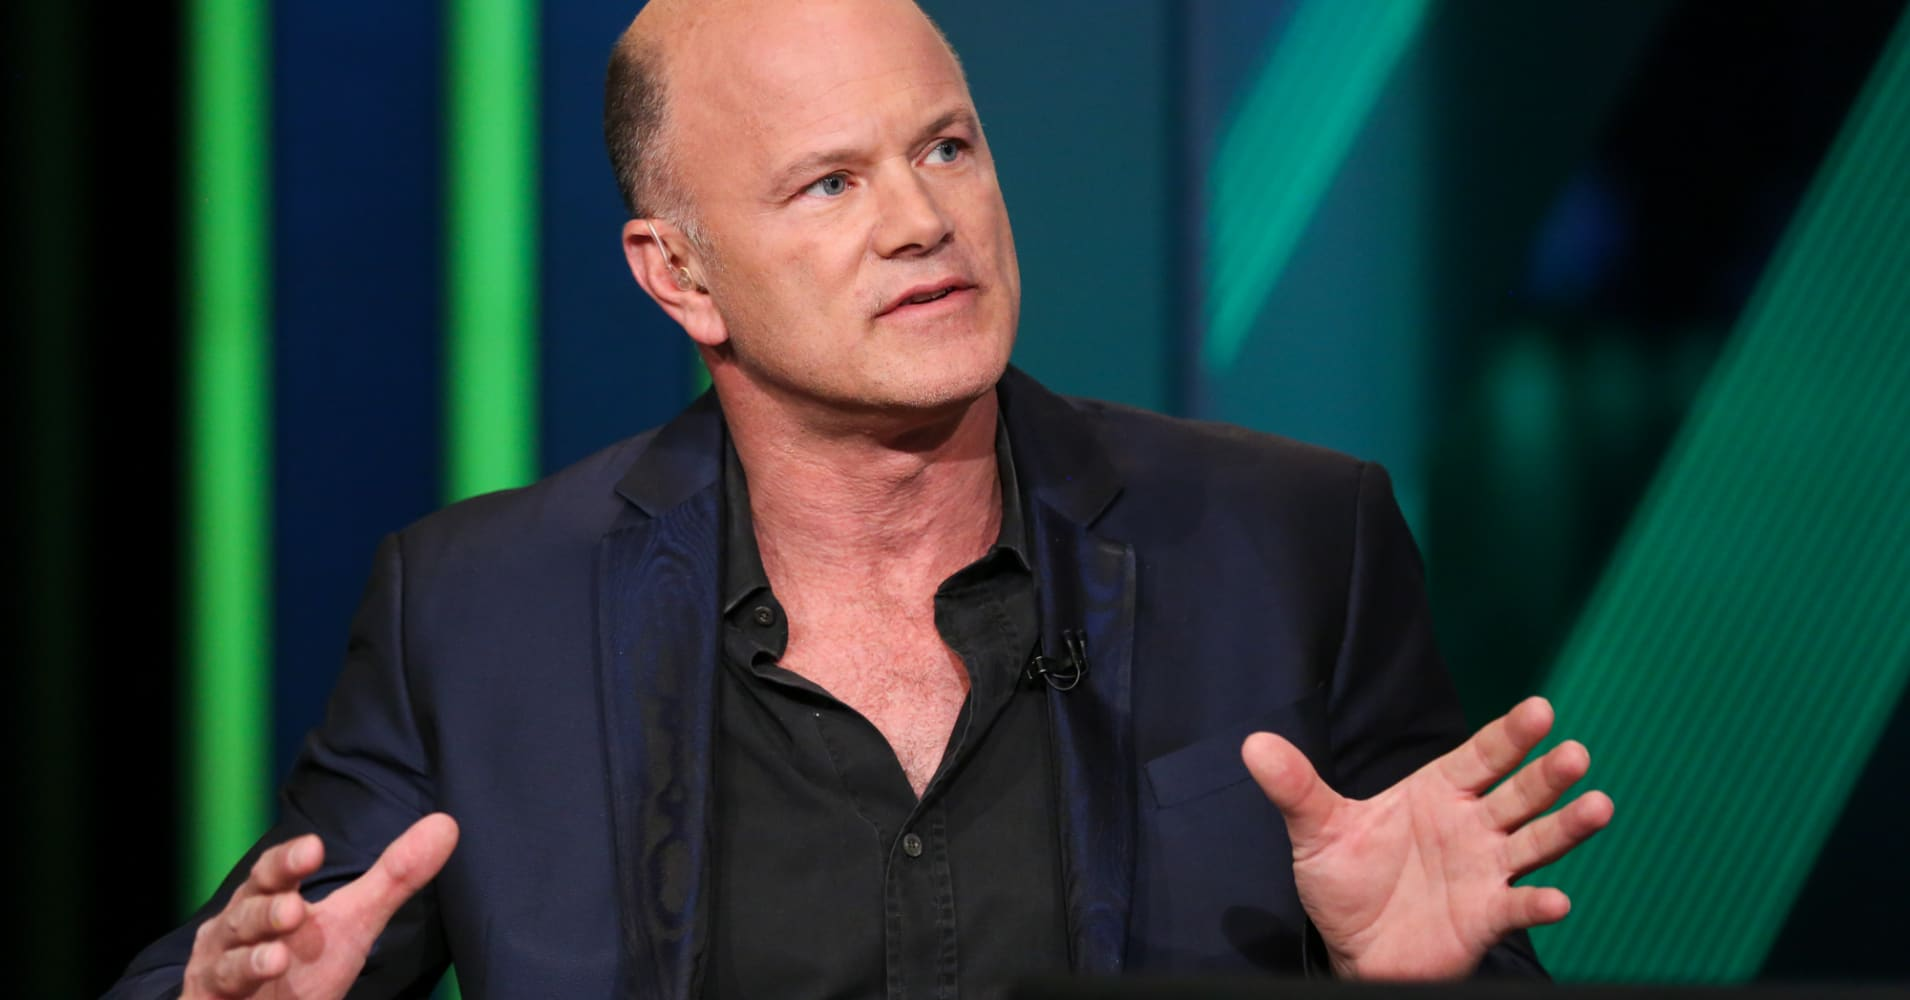 Mike Novogratz has some pretty scathing things to say about his ex-Goldman partners